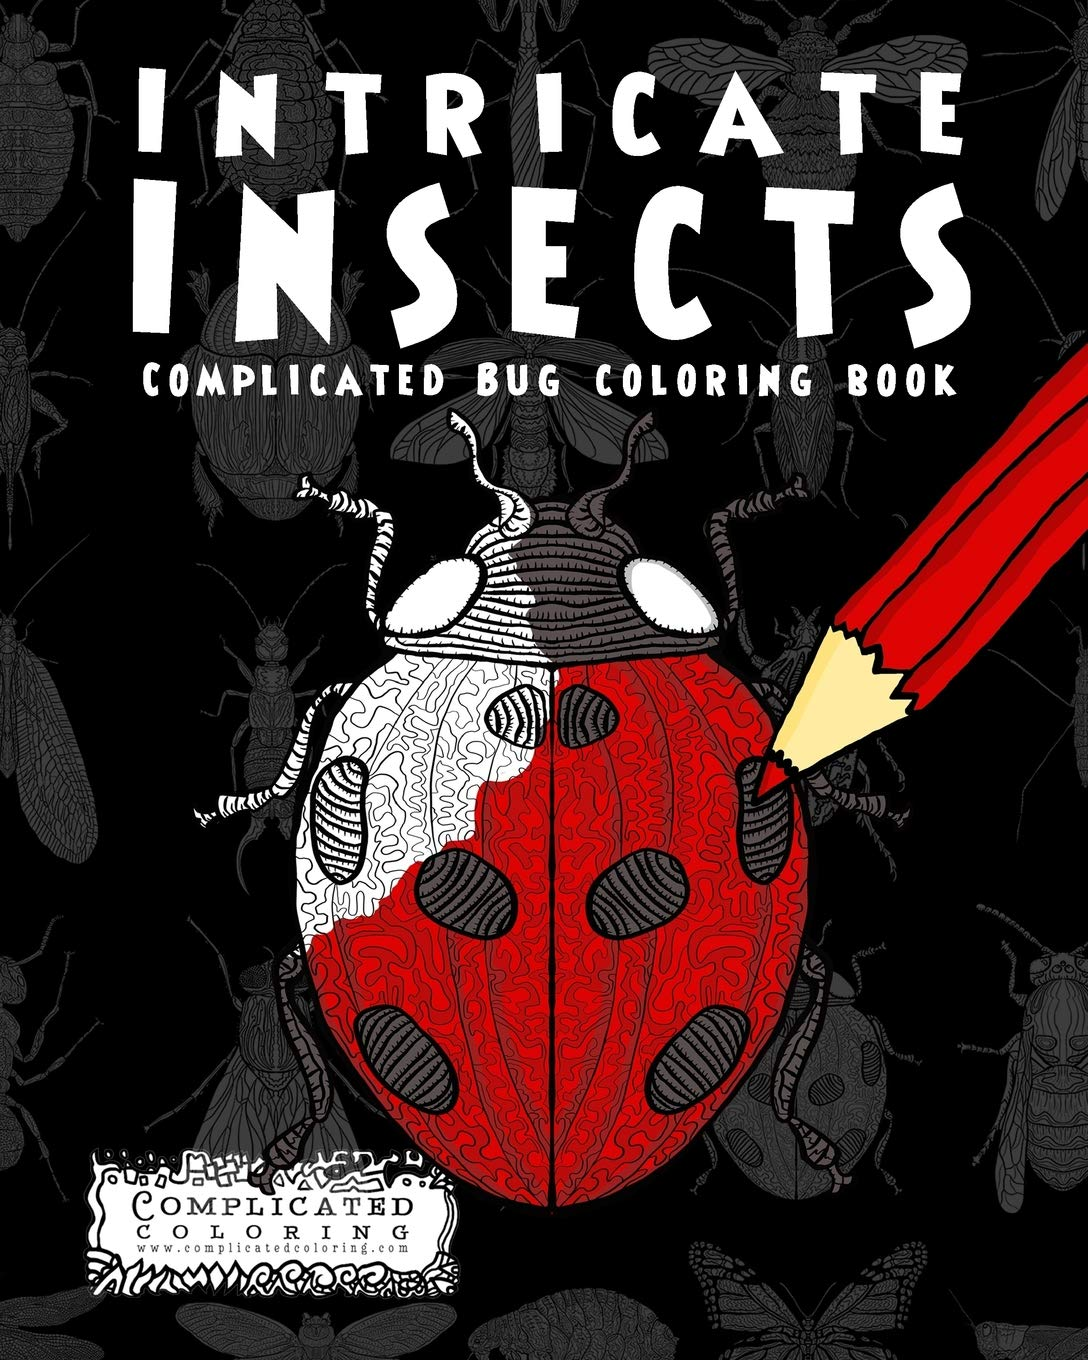 Intricate Insects Complicated Coloring Book